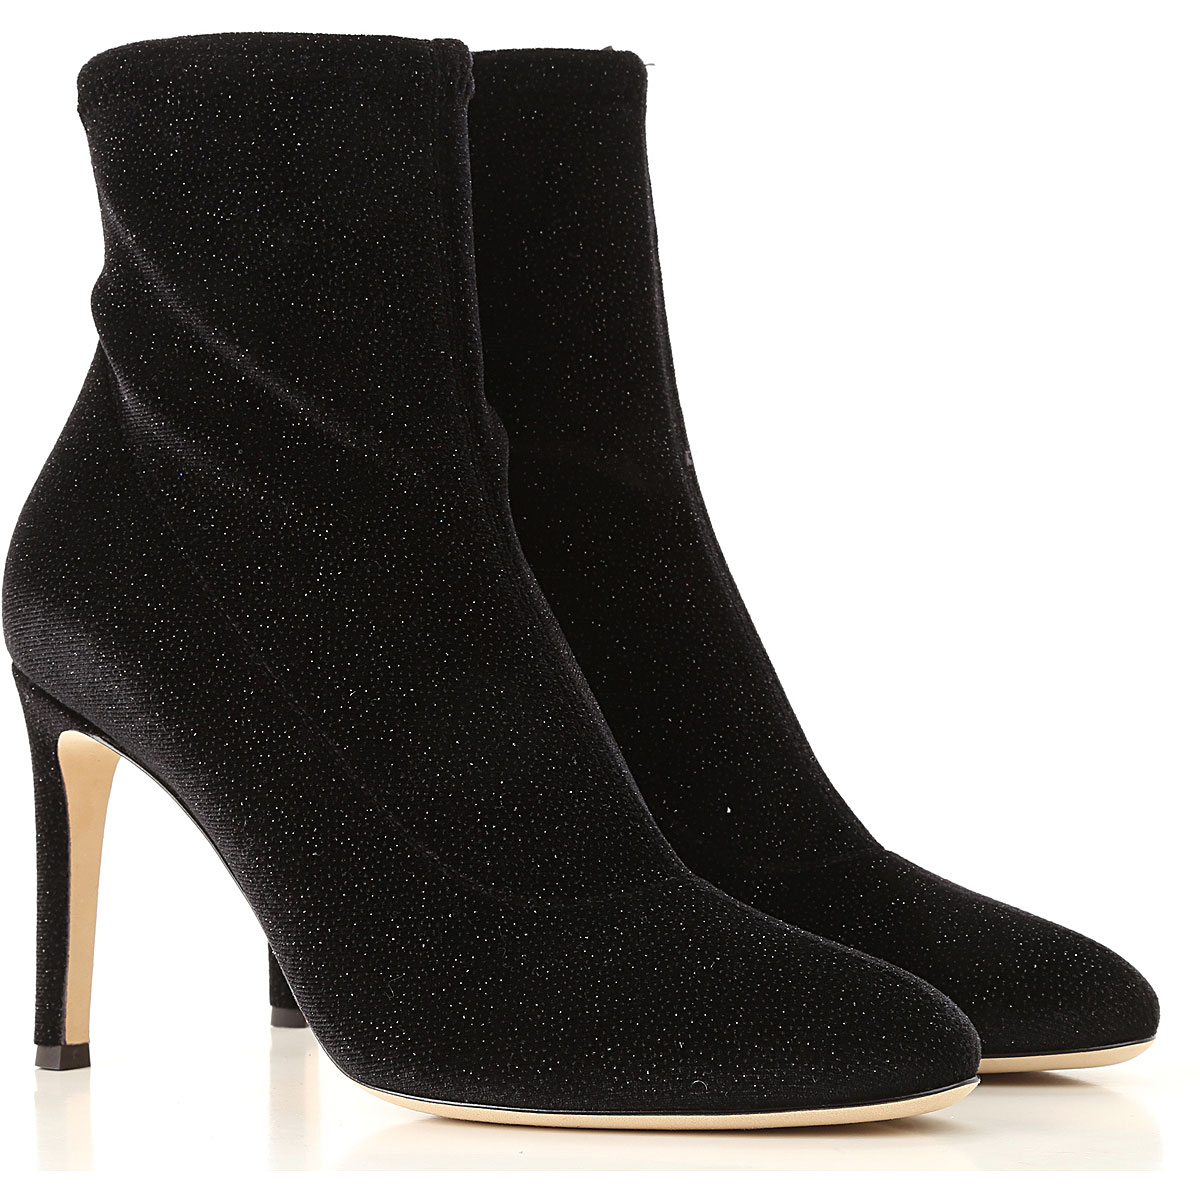 Image of Giuseppe Zanotti Design Boots for Women, Booties, Black, Leather, 2017, 10 6 6.5 7 8 8.5 9 9.5